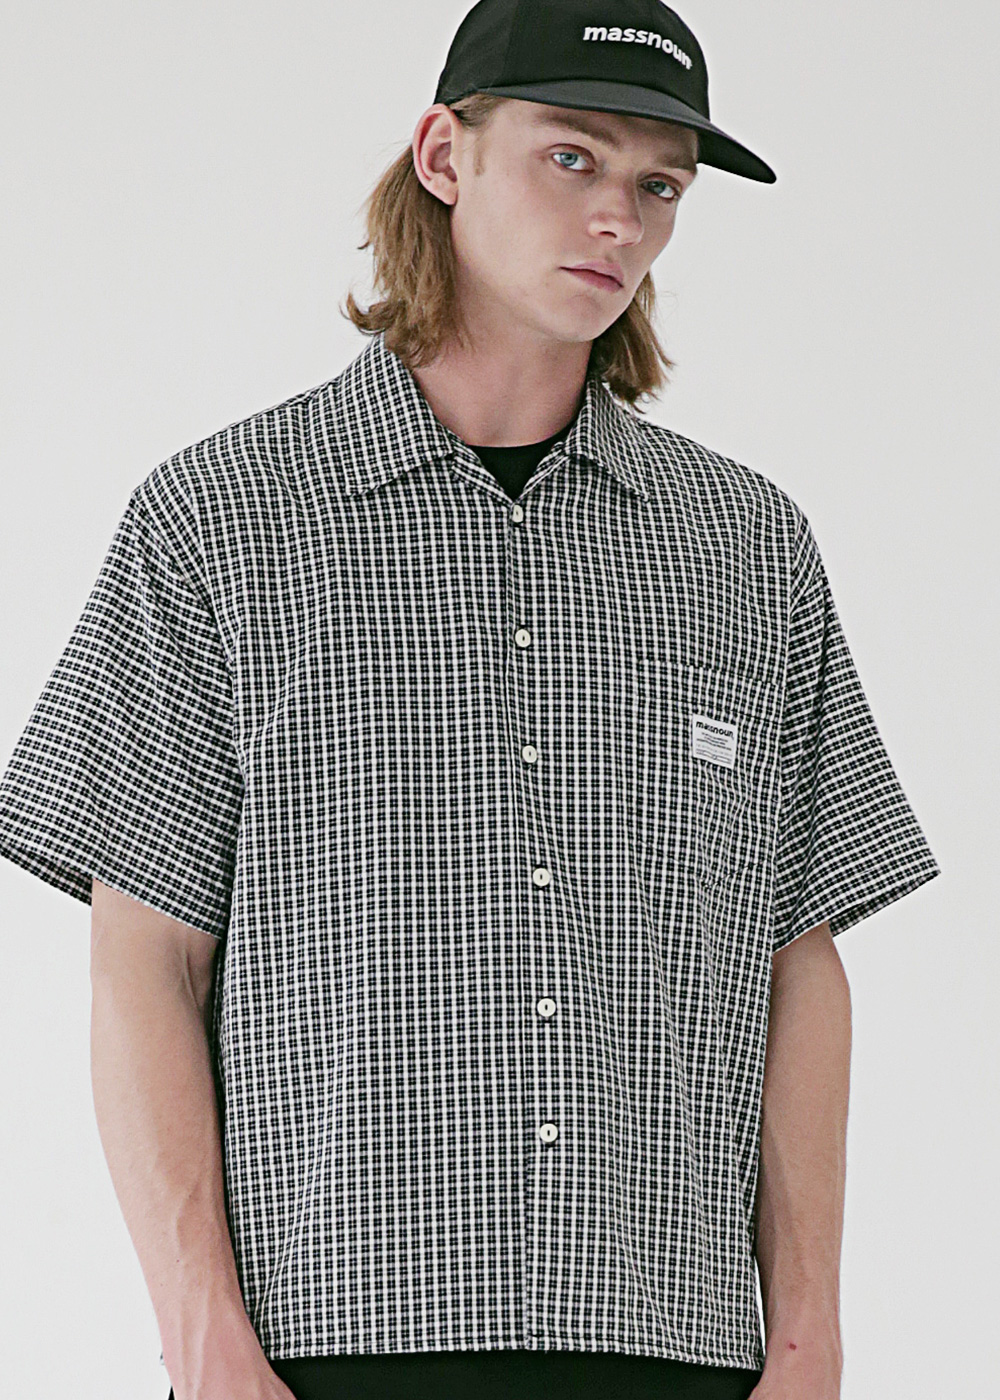 SL LOGO BASIC SM CHECK SHIRTS MSEST007-BK